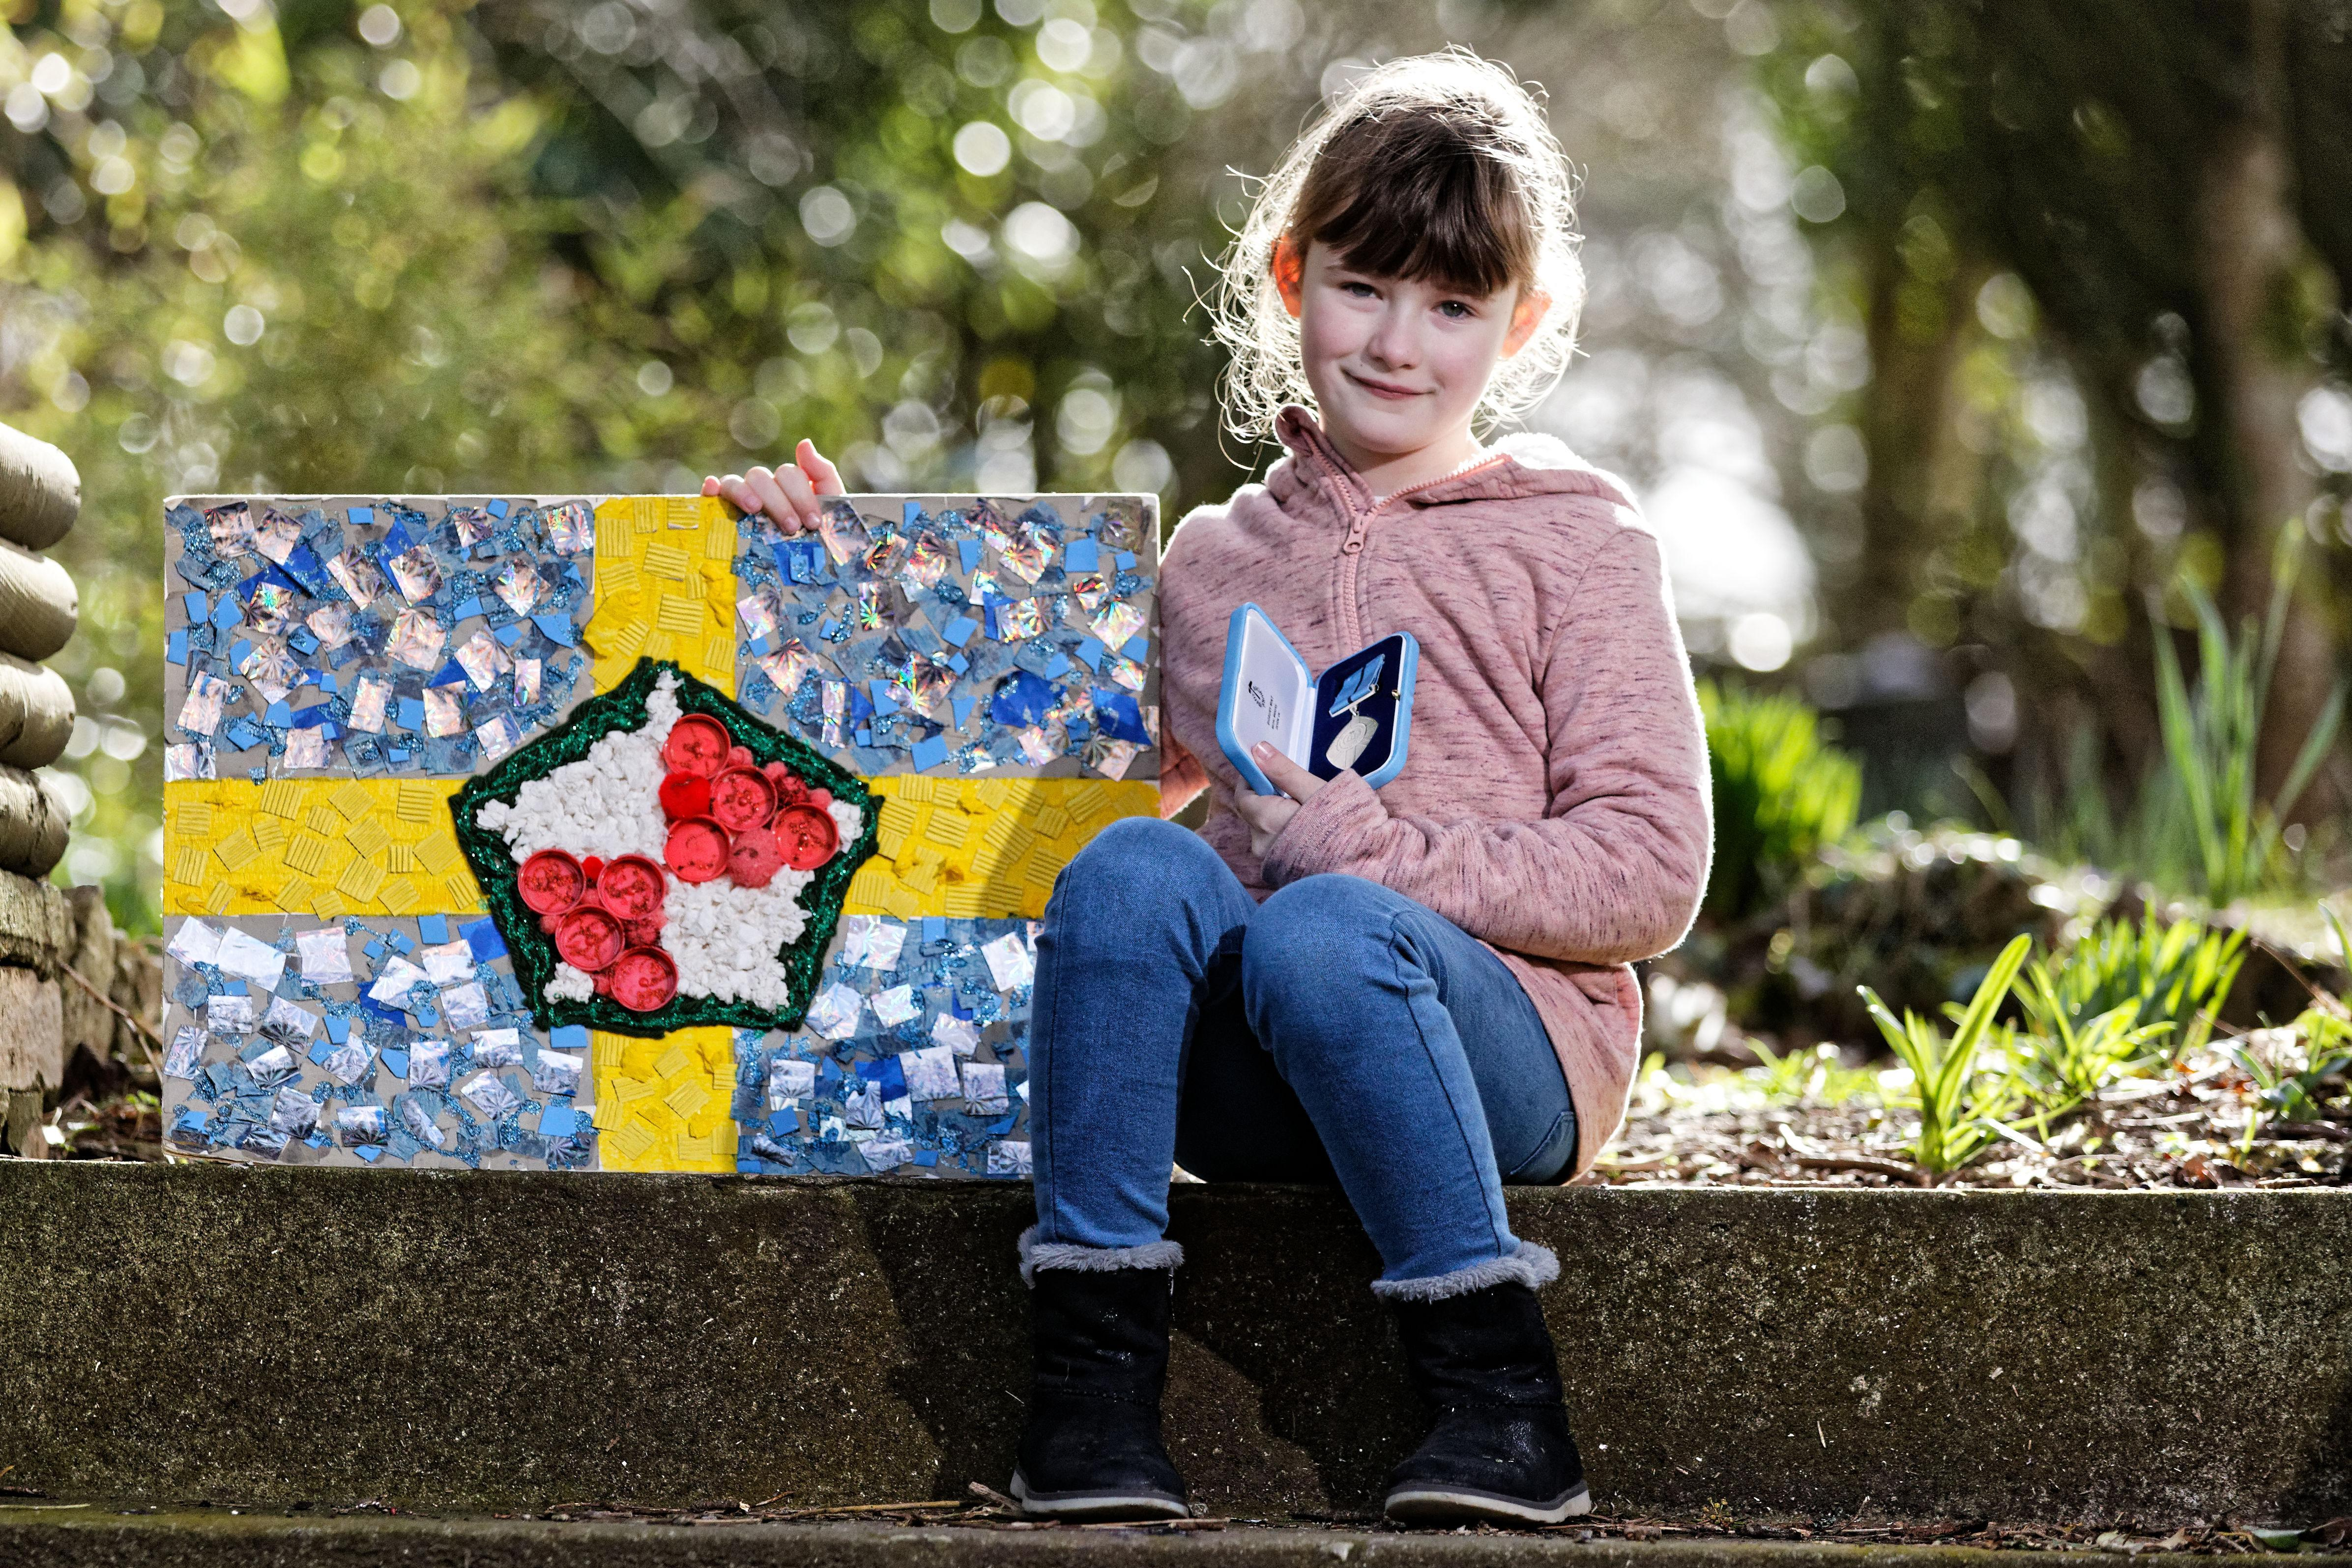 Girl, 7, raises a record £150,000 for Withybush Hospital in Wales that treated her dad's cancer